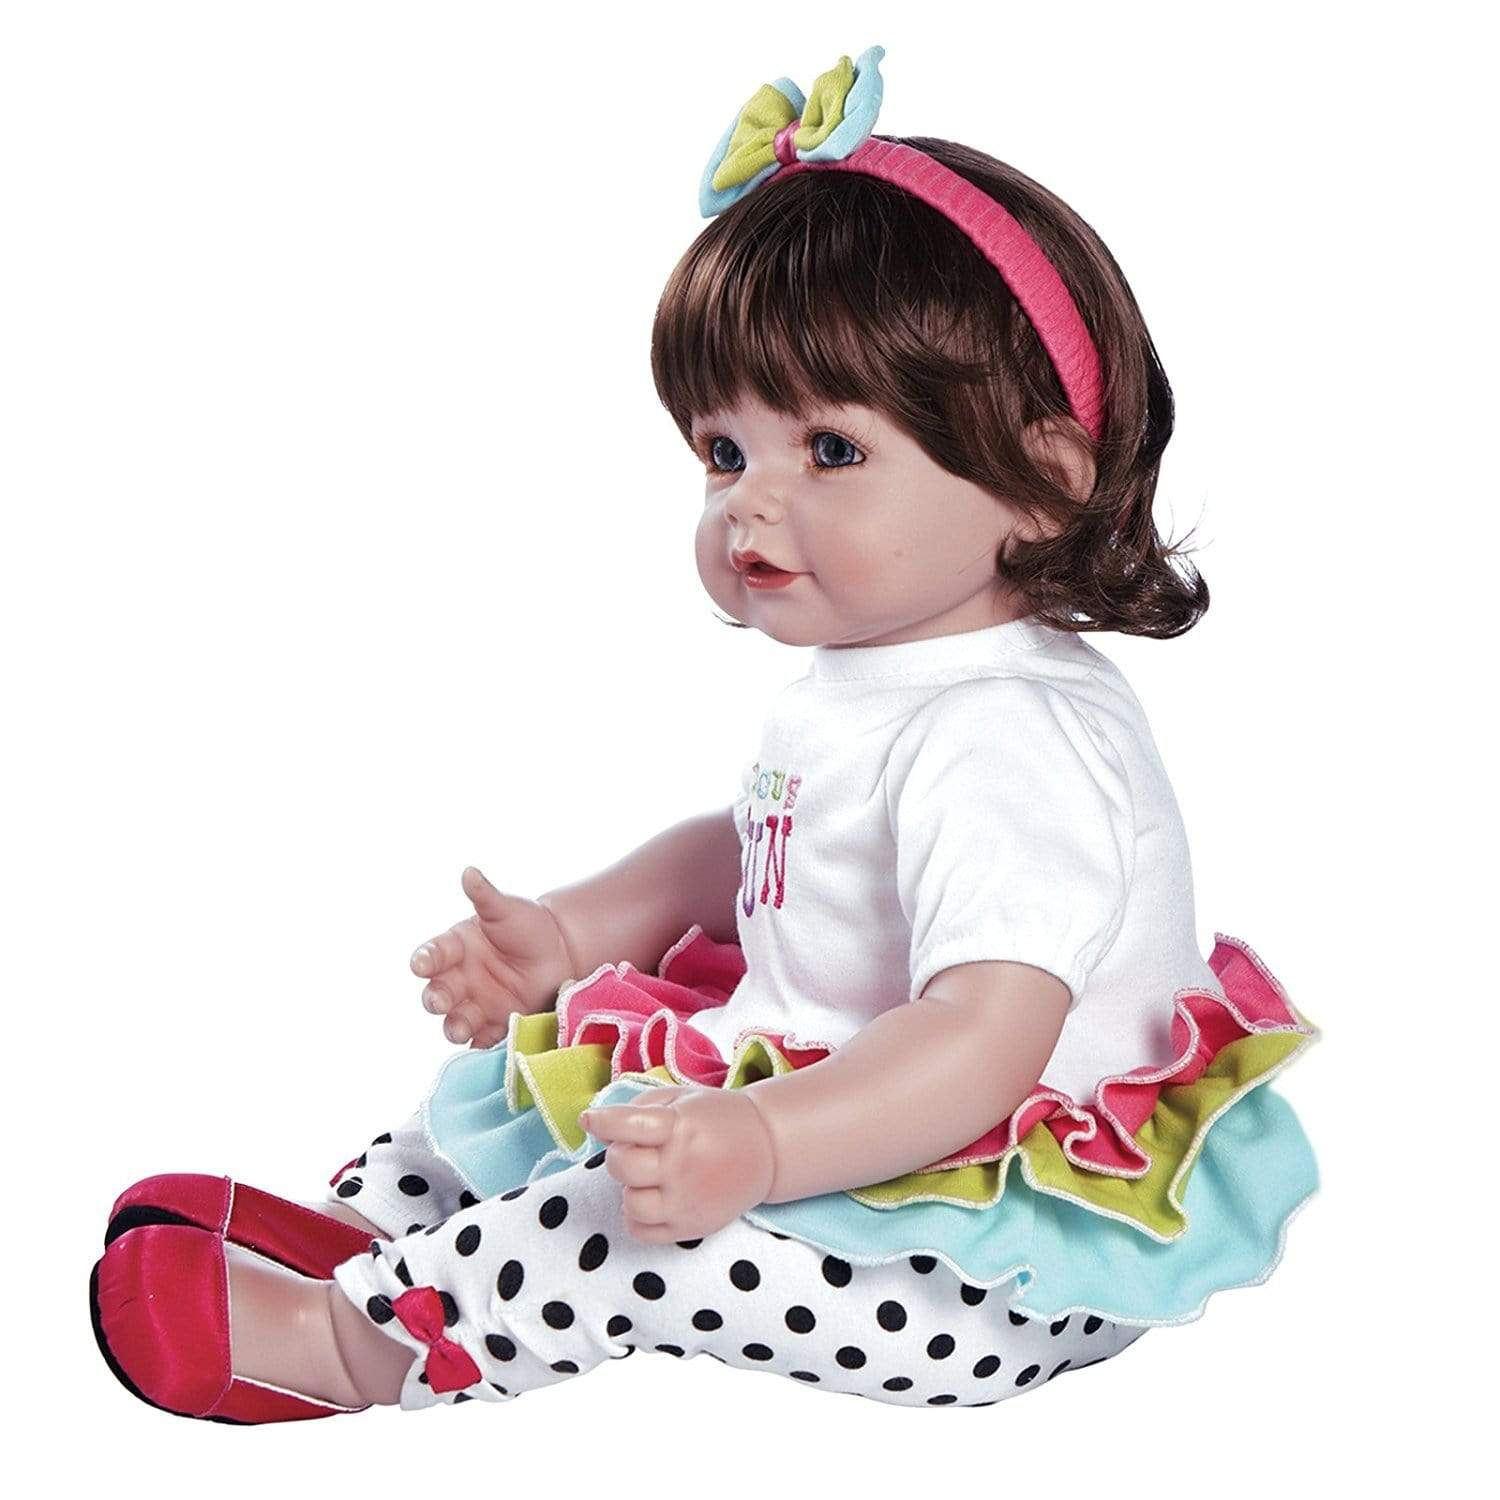 "Circus Fun Outfit"" Baby Doll Clothes Fits 20 inch ToddlerTime Doll"